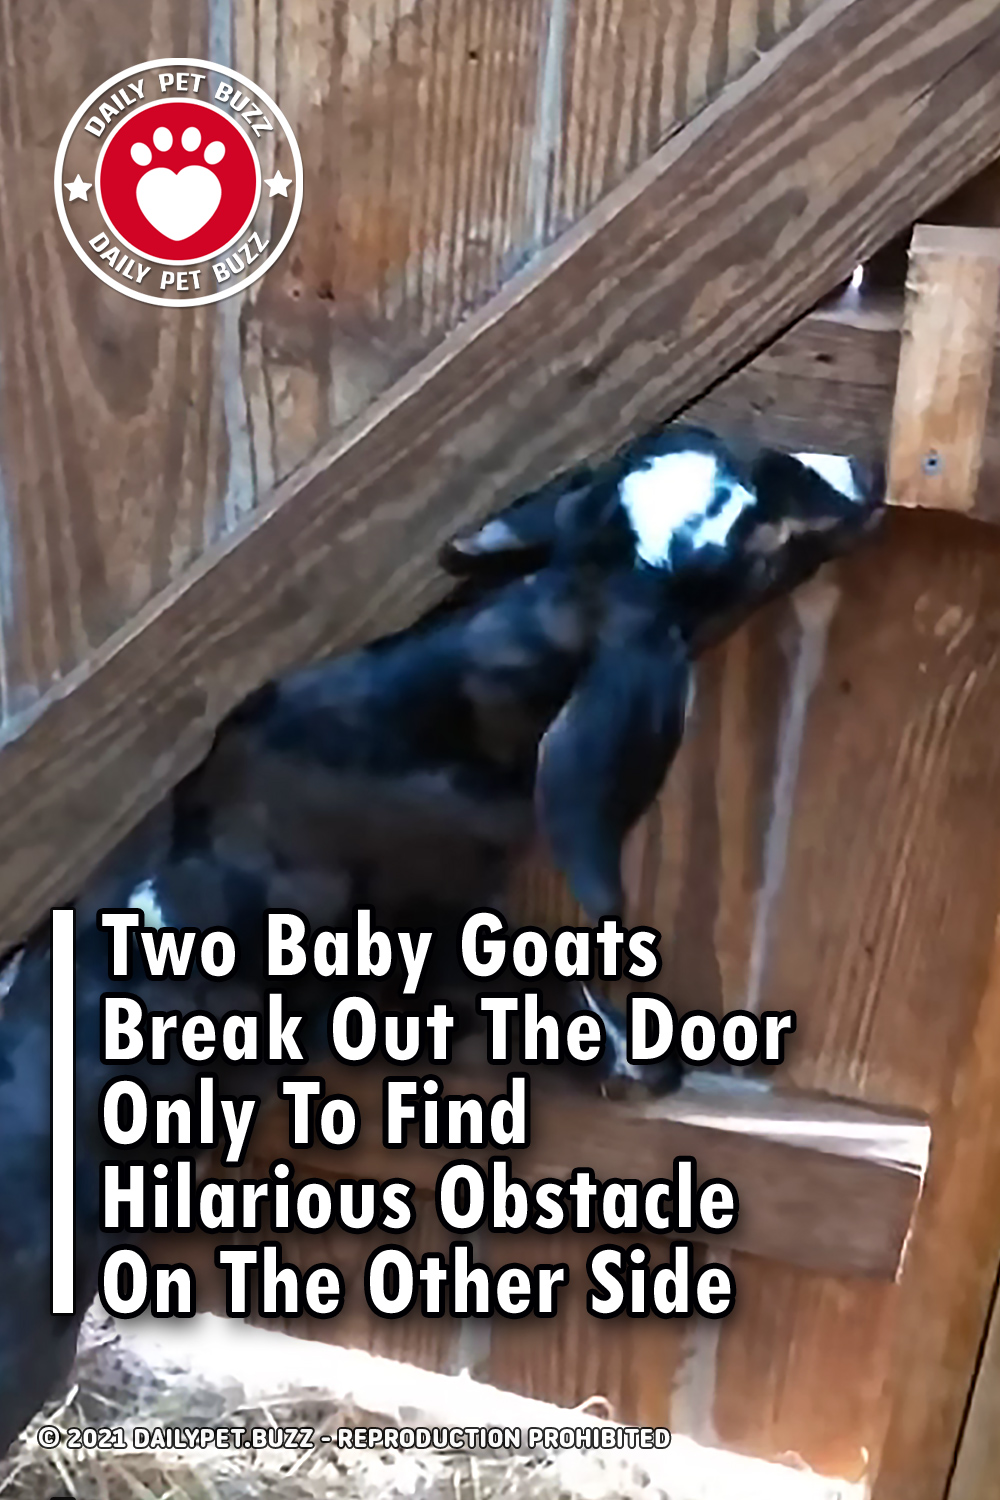 Two Baby Goats Break Out The Door Only To Find Hilarious Obstacle On The Other Side